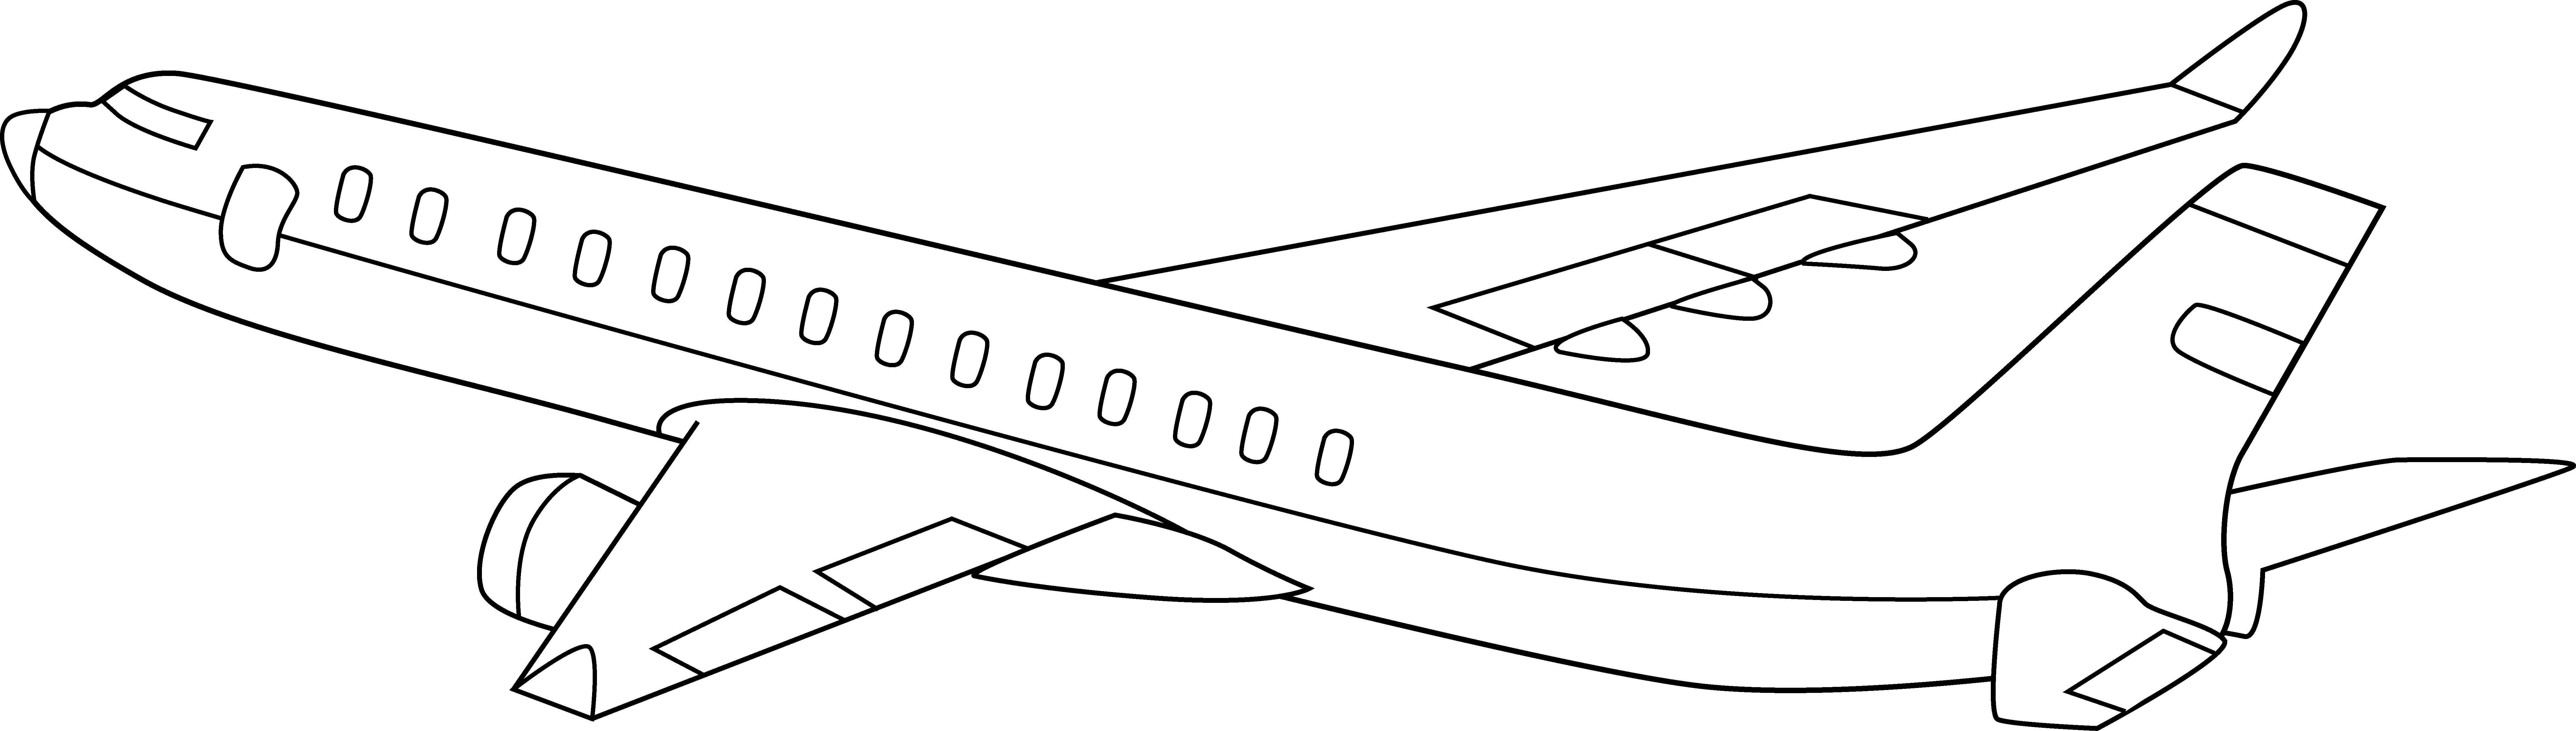 action lines clipart airplane